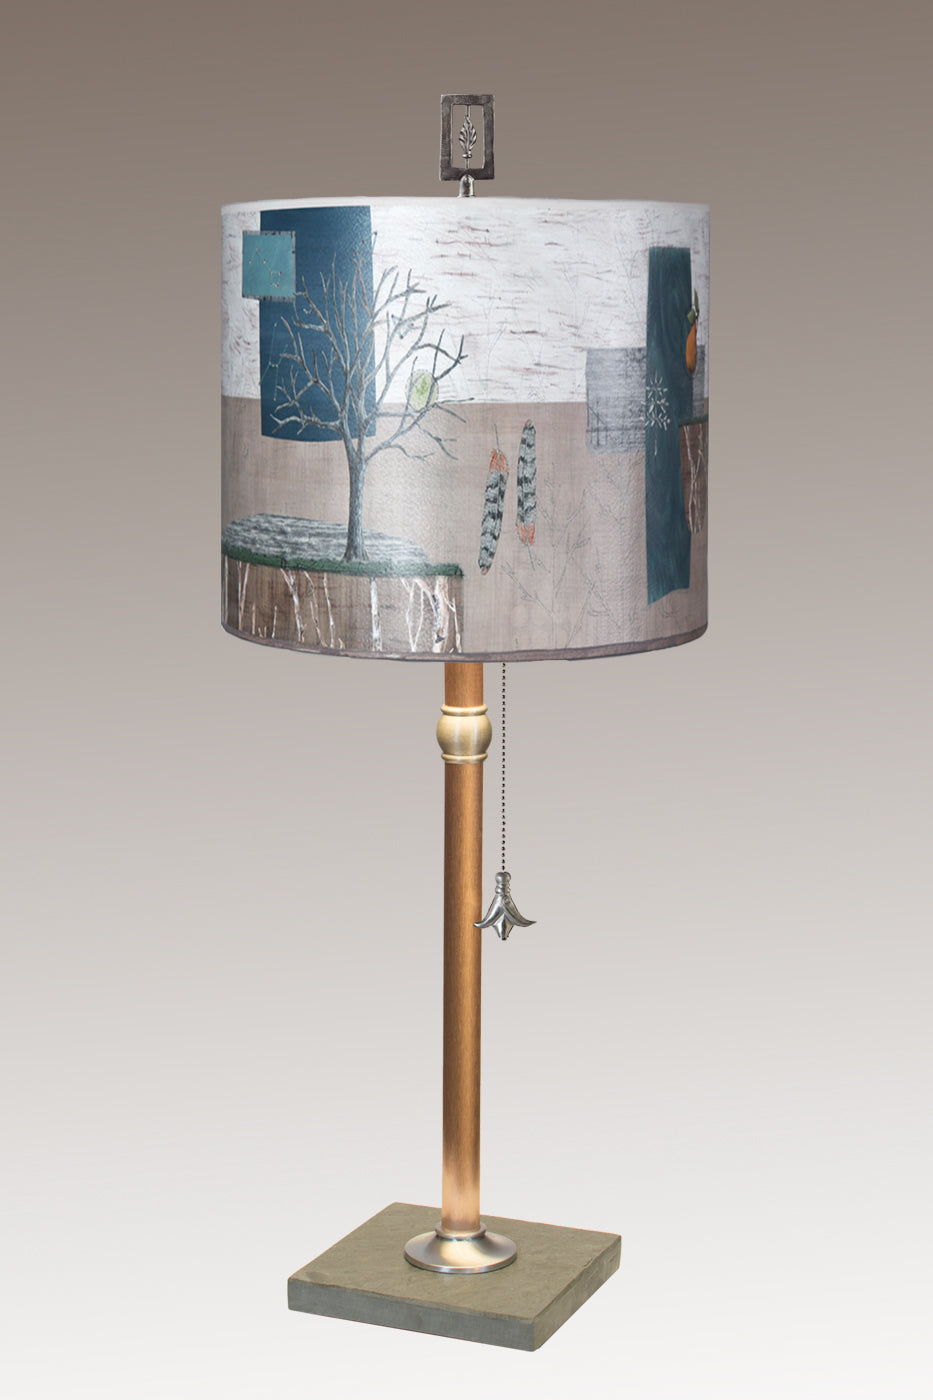 Copper Table Lamp with Medium Drum Shade in Wander in Drift